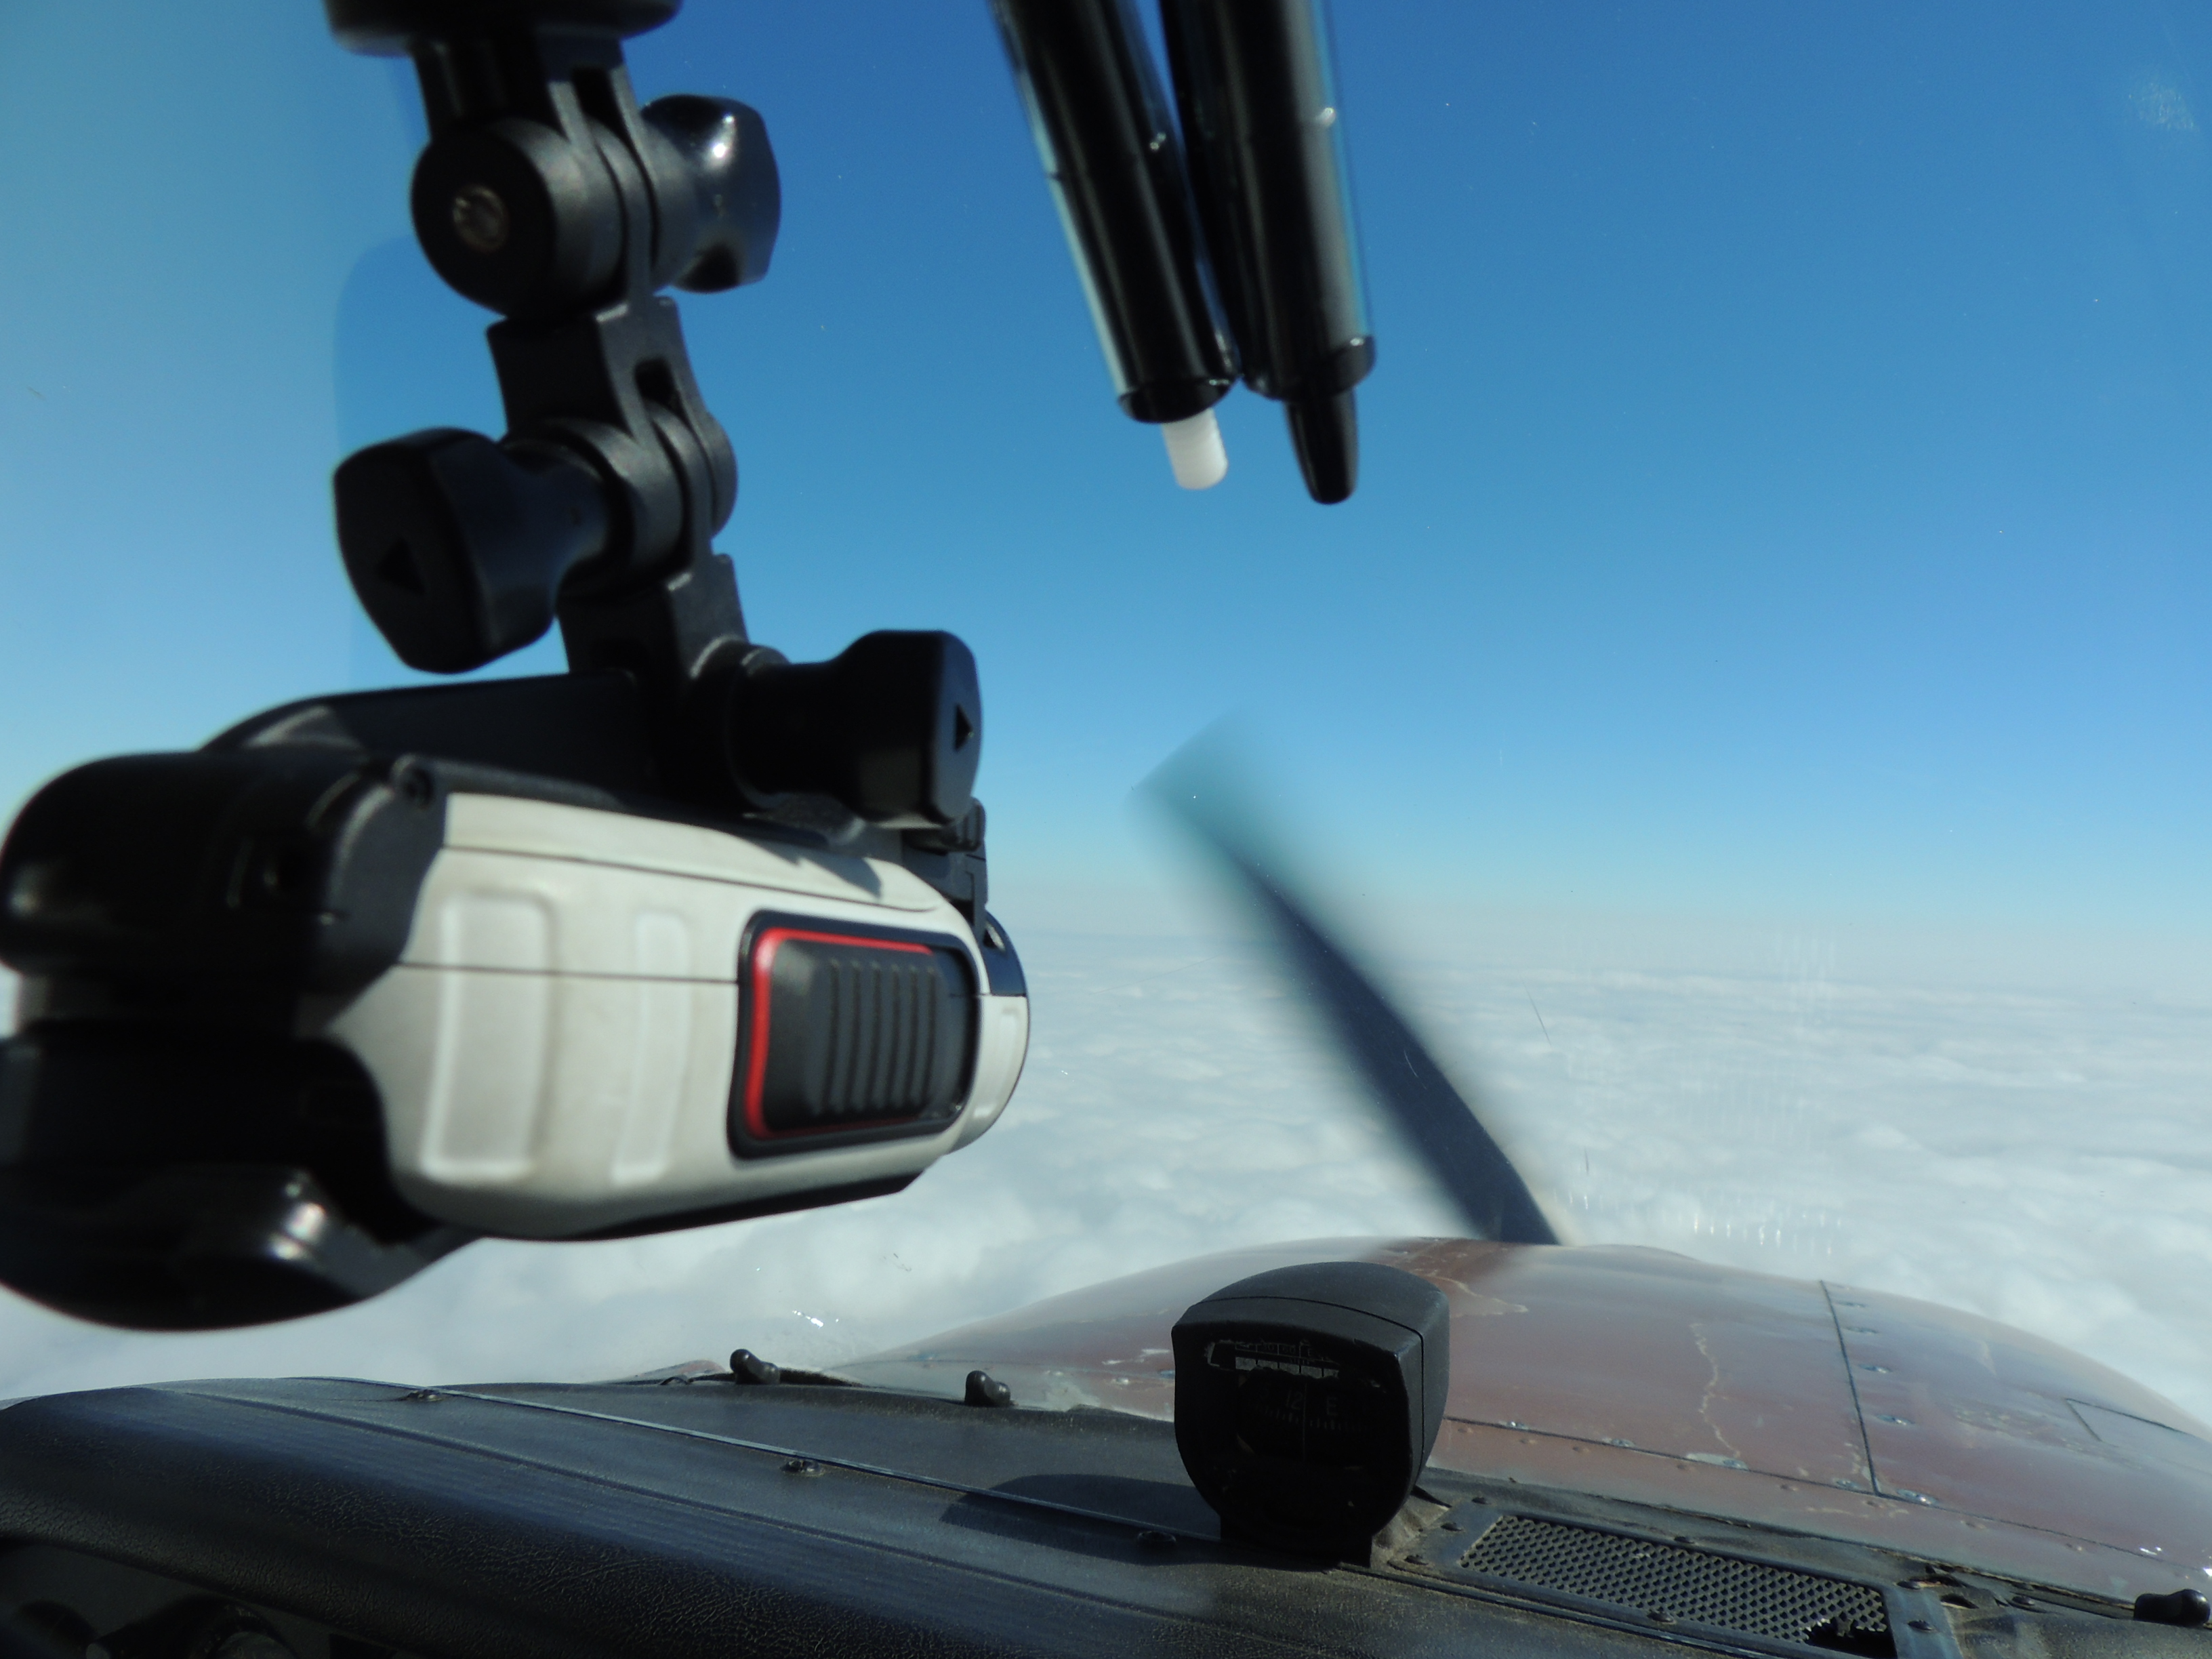 Our Eye in the Sky (Garmin VIRB)